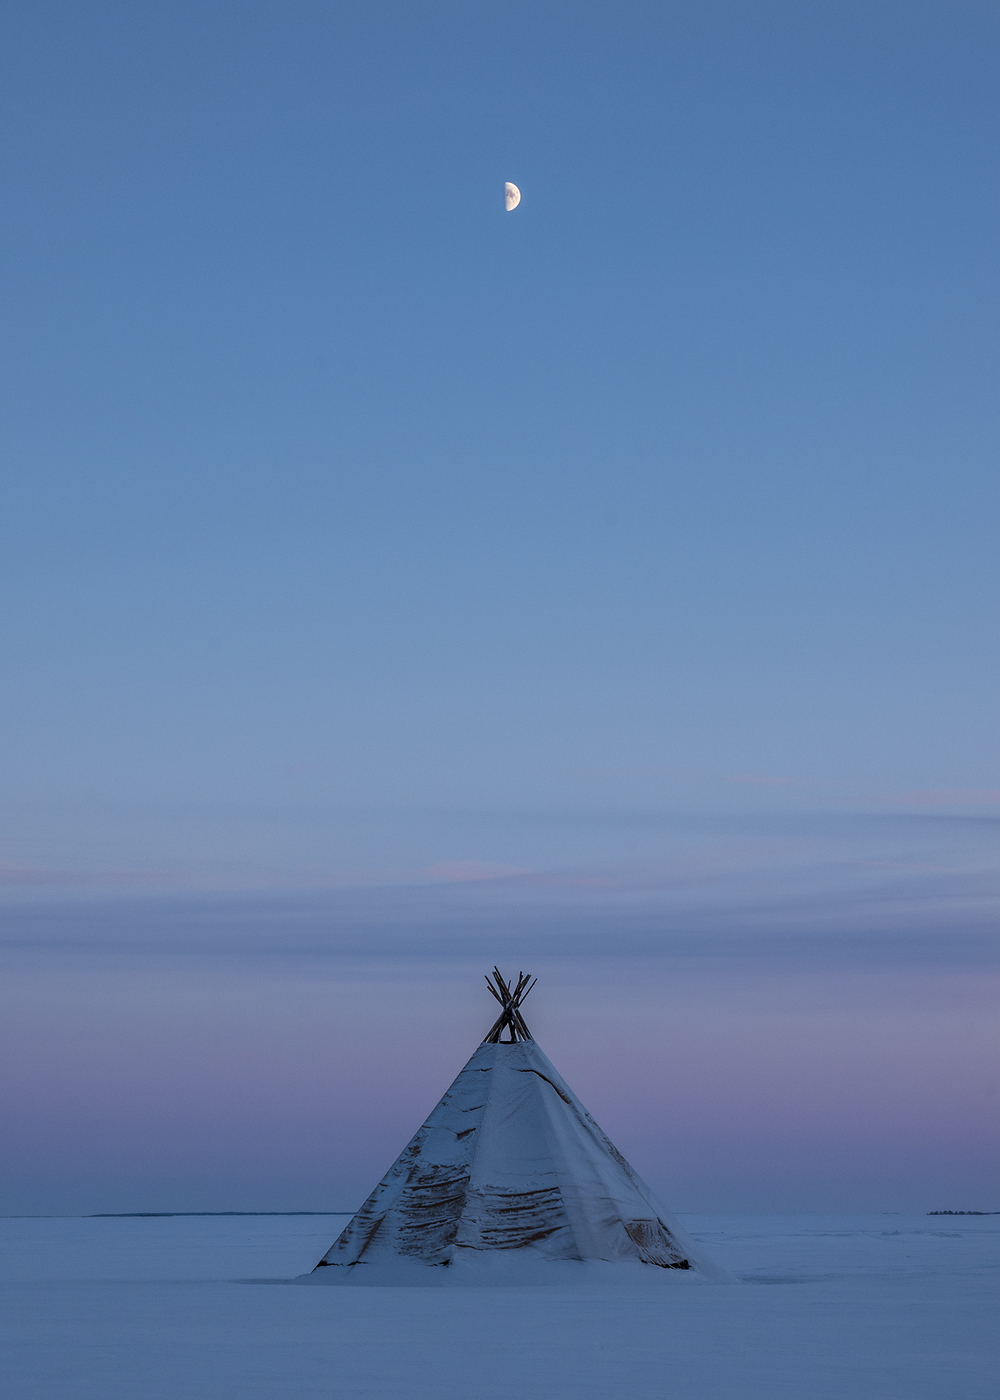 Moonrise over a tent on the frozen archipelago of Swedish Lapland.